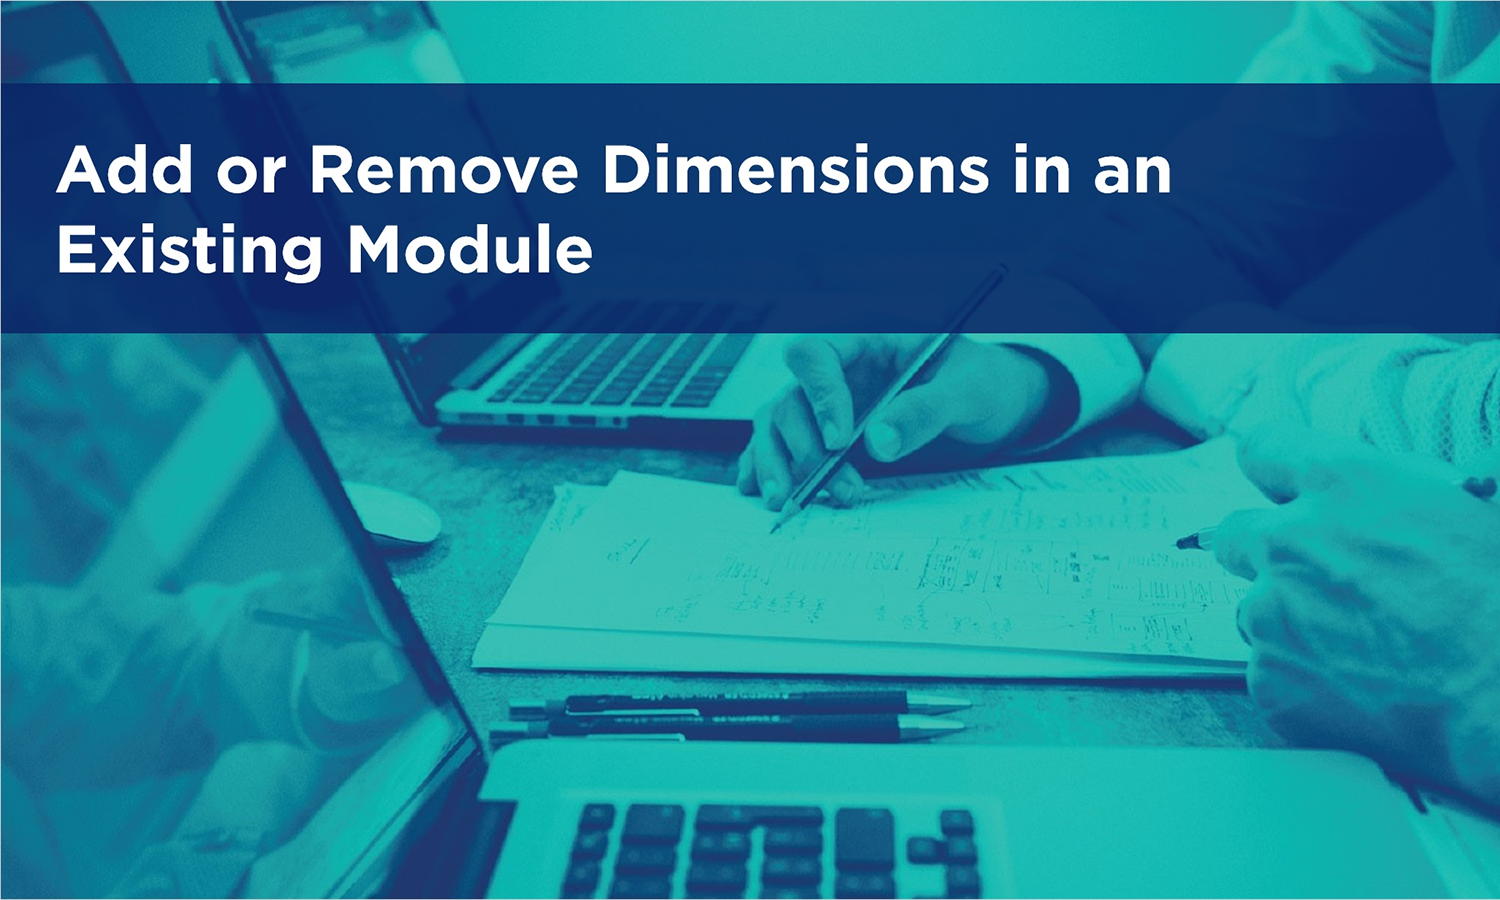 Add or Remove Dimensions in an Existing Module